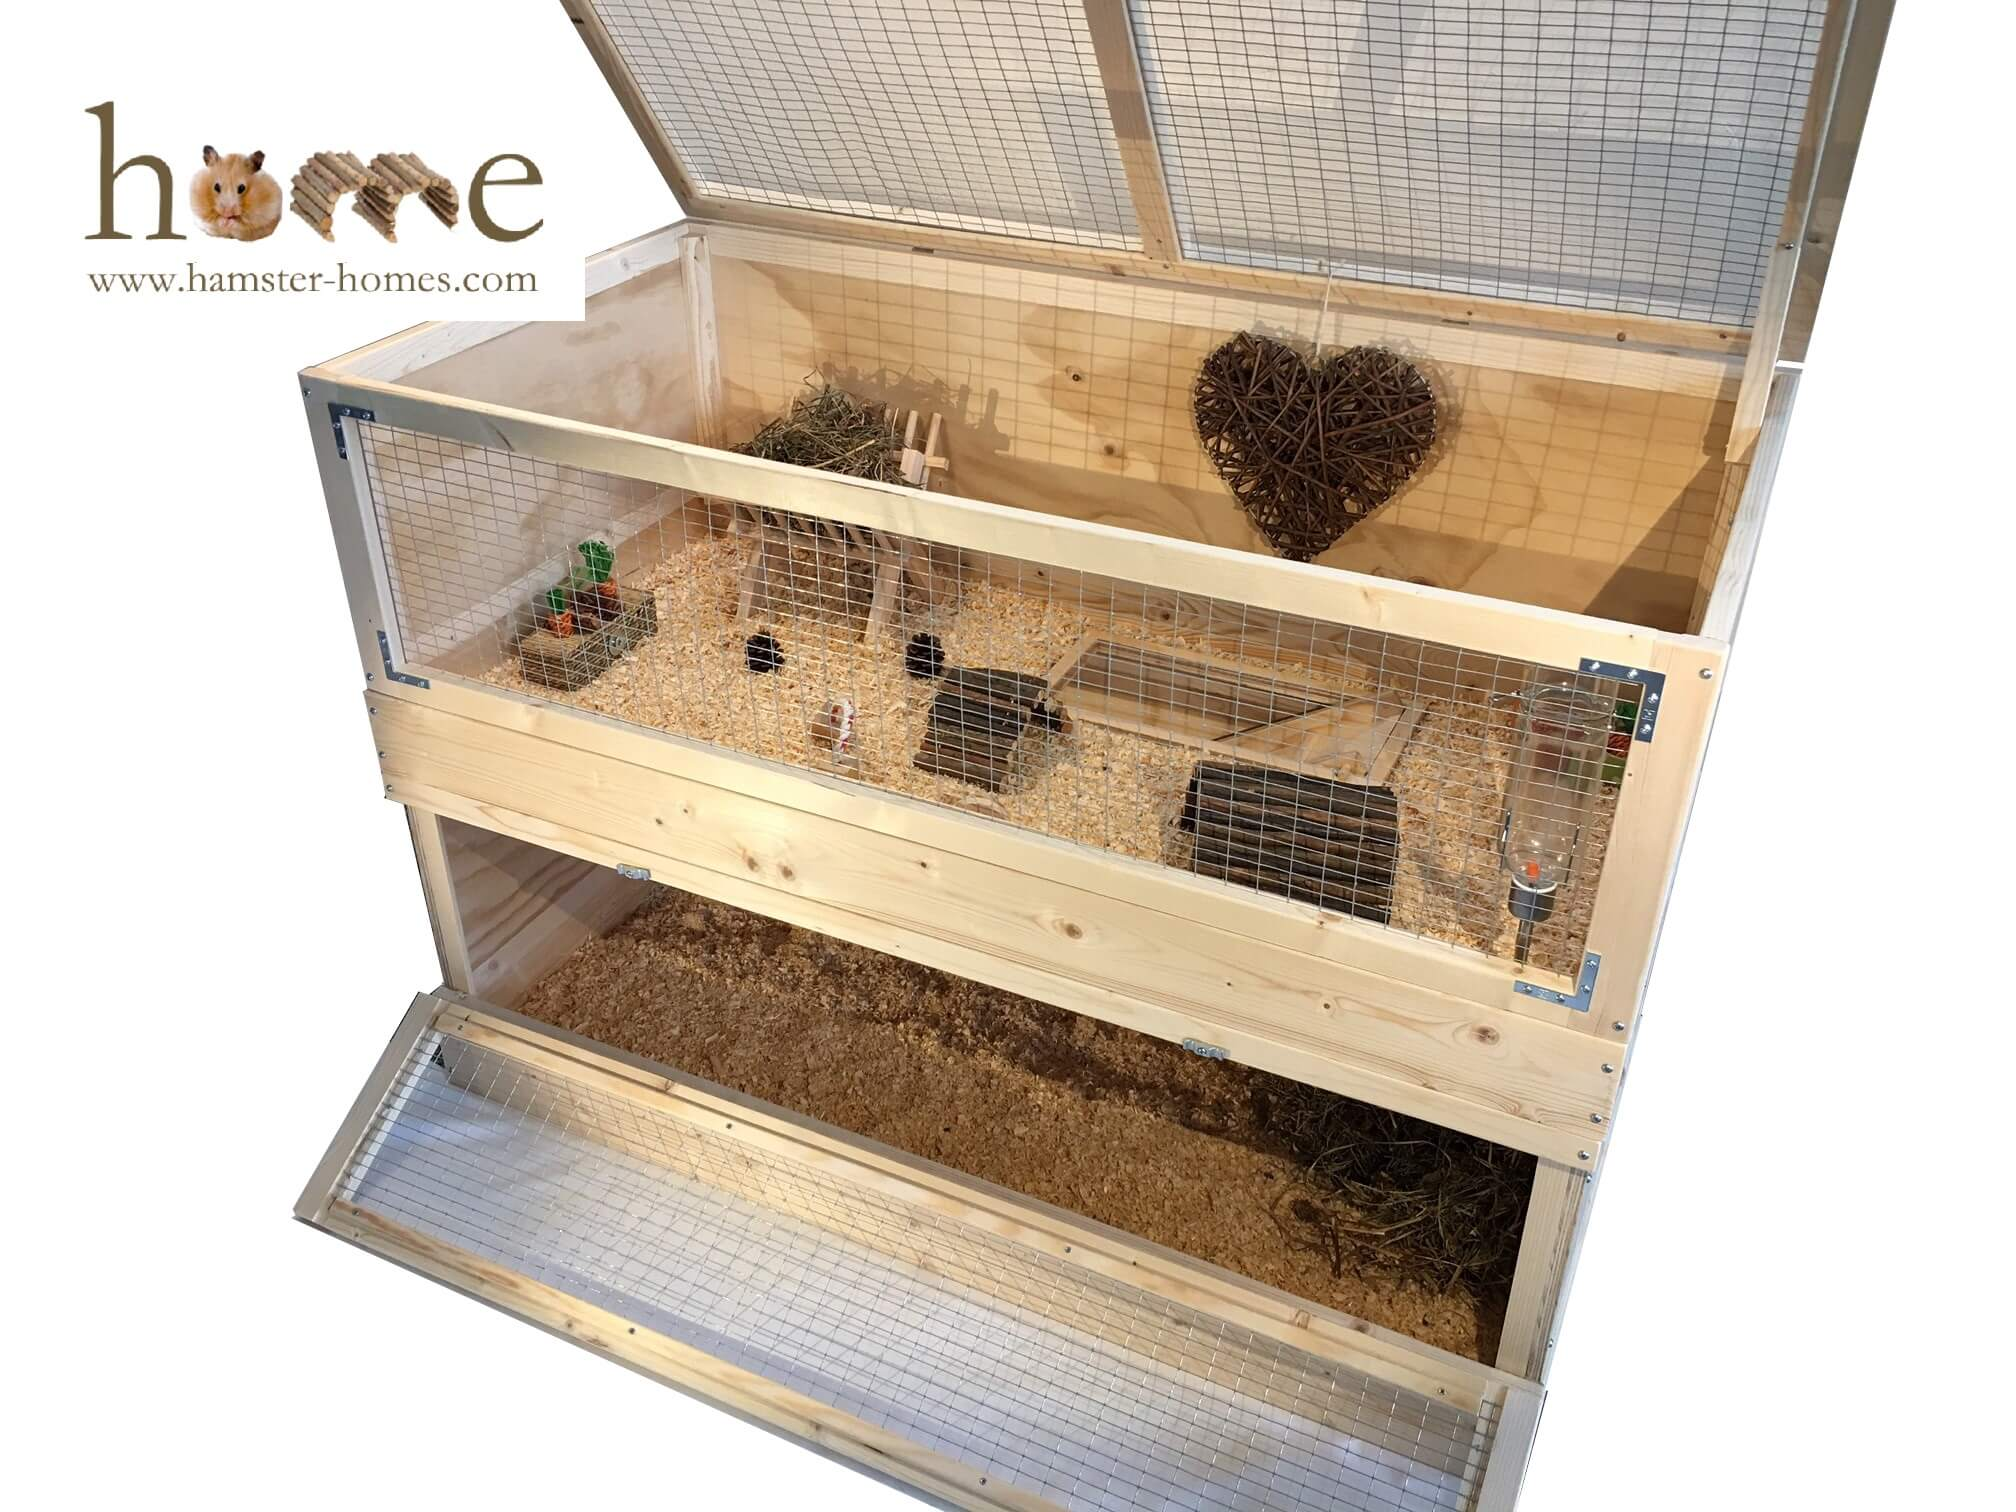 2 tier guinea pig cage – Angle view